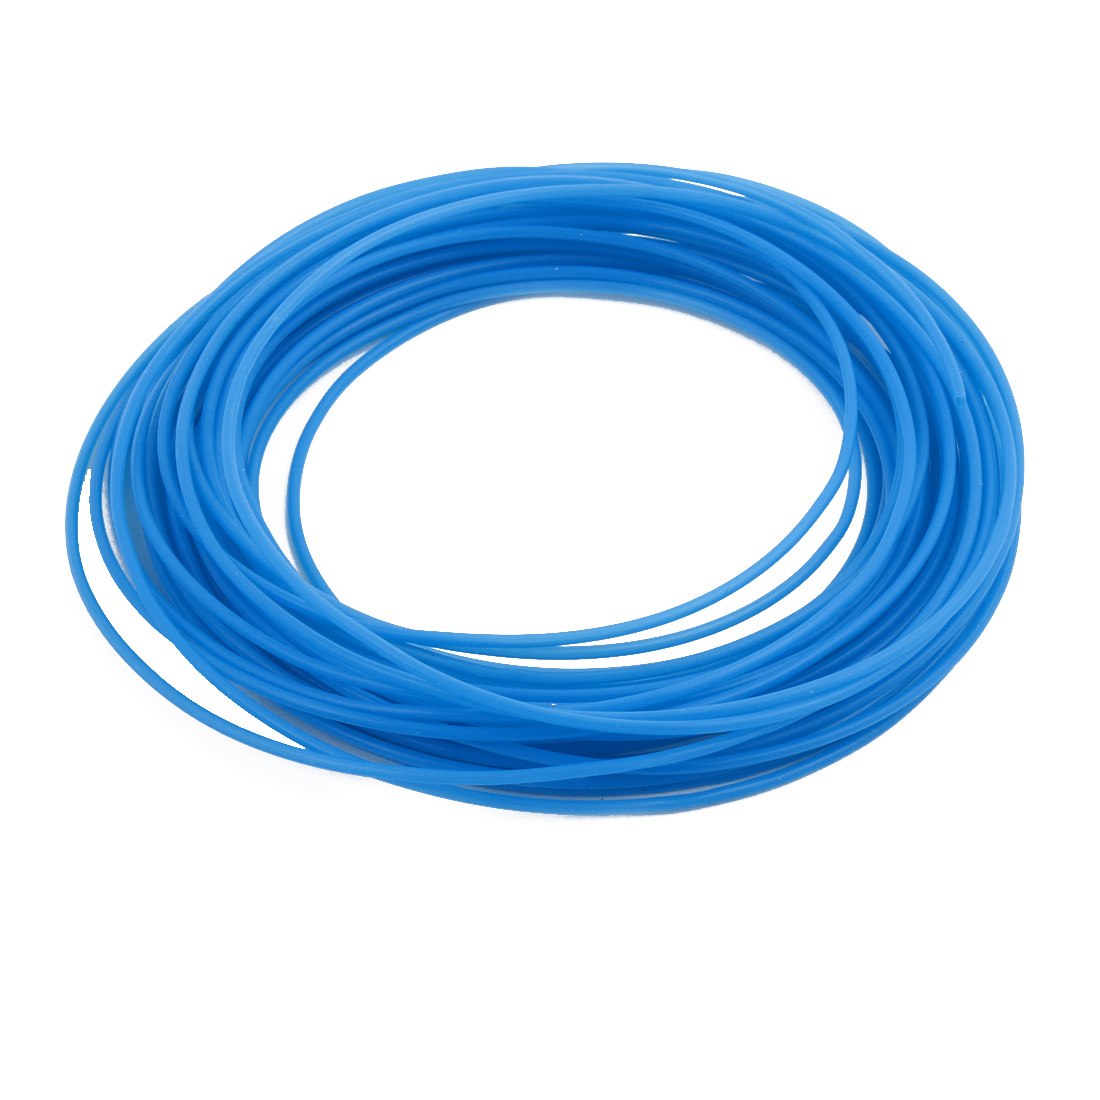 1.34mmx1.64mm PTFE Resistant High Temperature Blue Tubing 10 Meters 32.8Ft